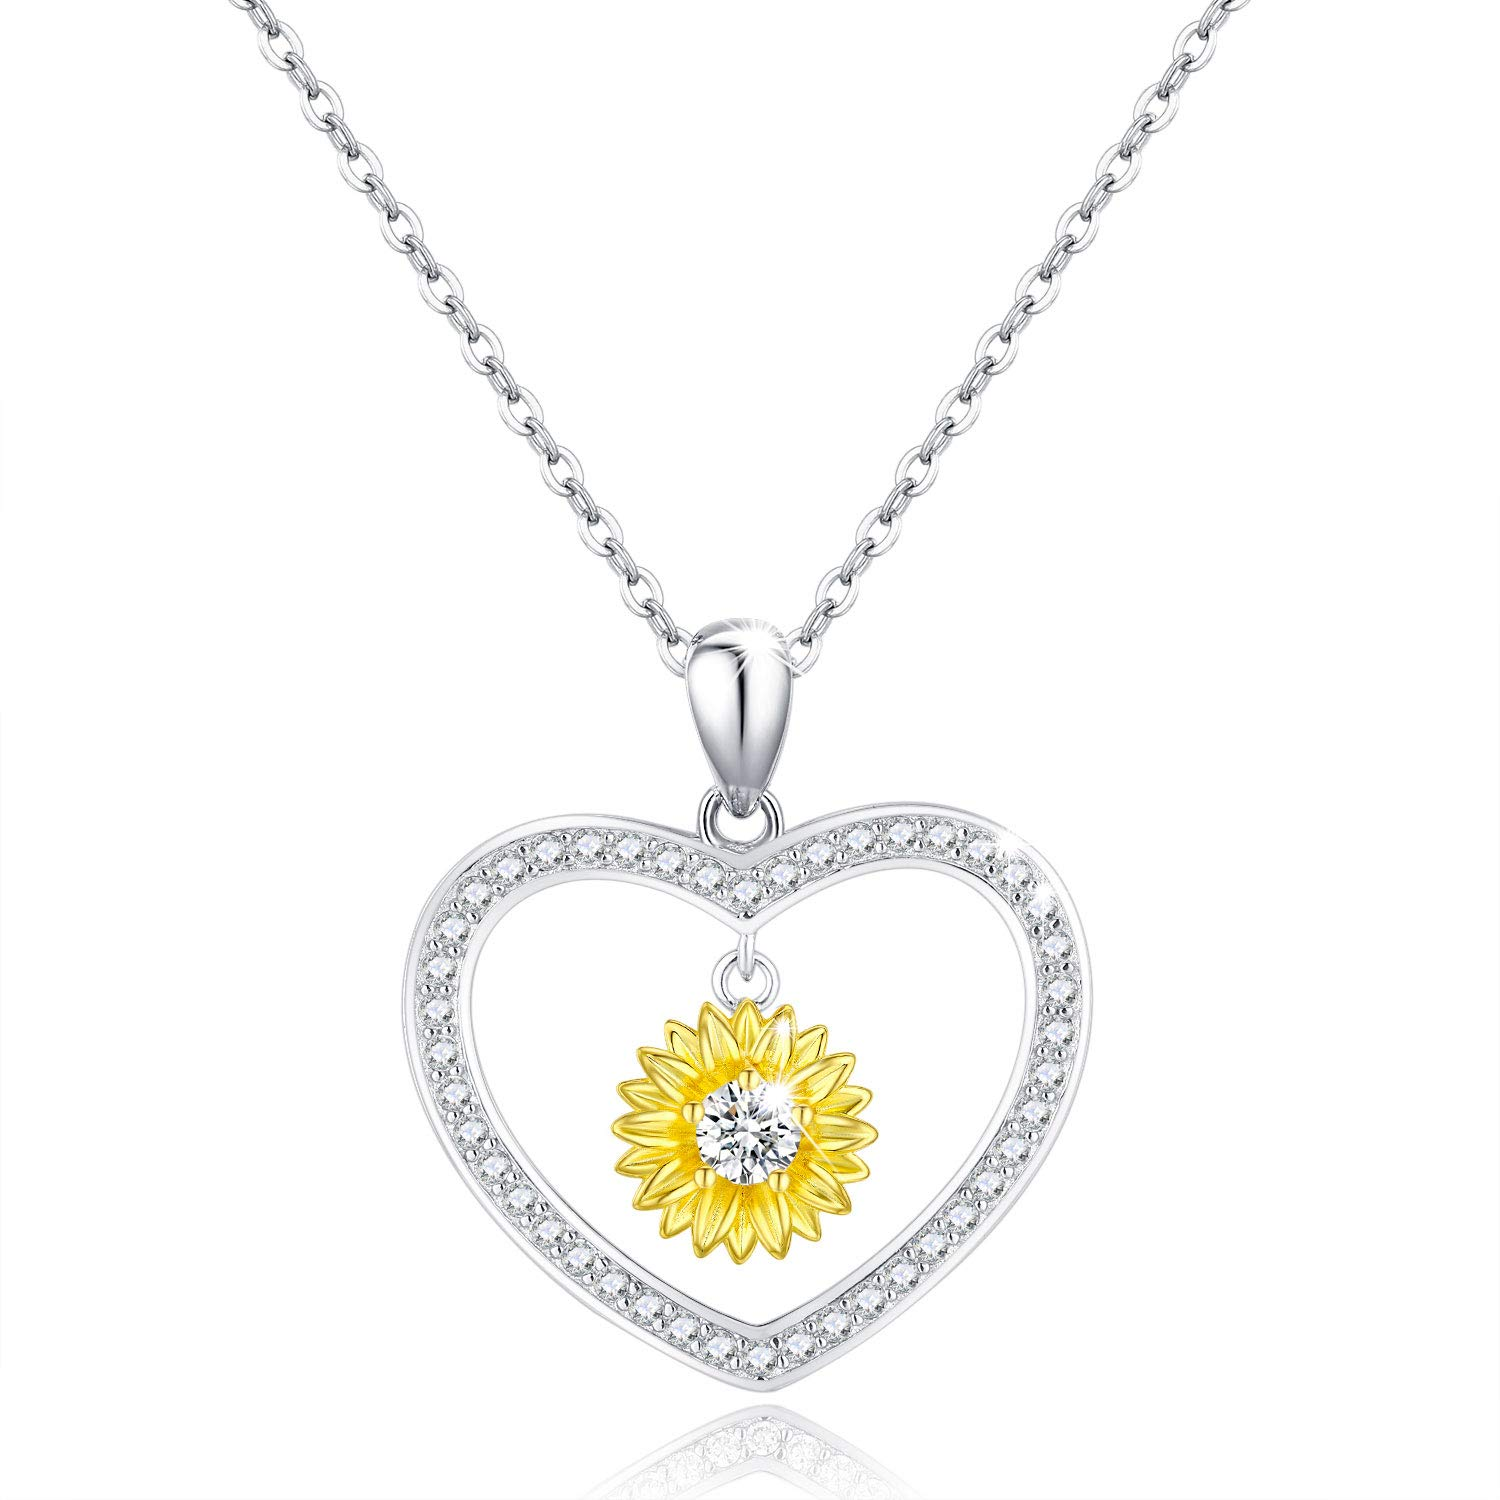 PRAYMOS Sunflower Necklace 18k Gold Plated 925 Sterling Silver CZ Pendant Necklace You are My Sunshine